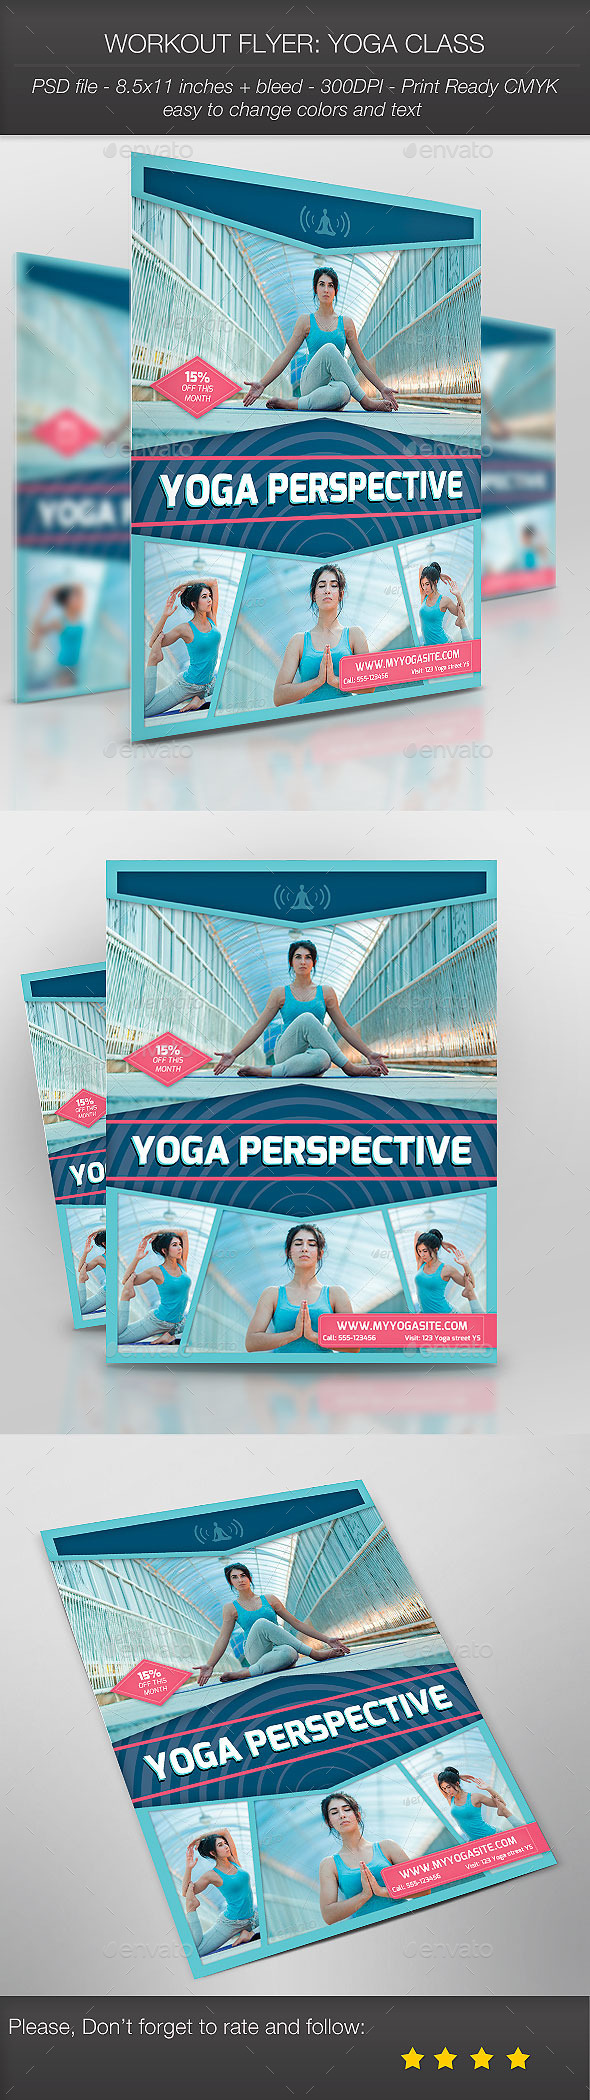 Workout Flyer: Yoga Class - Sports Events